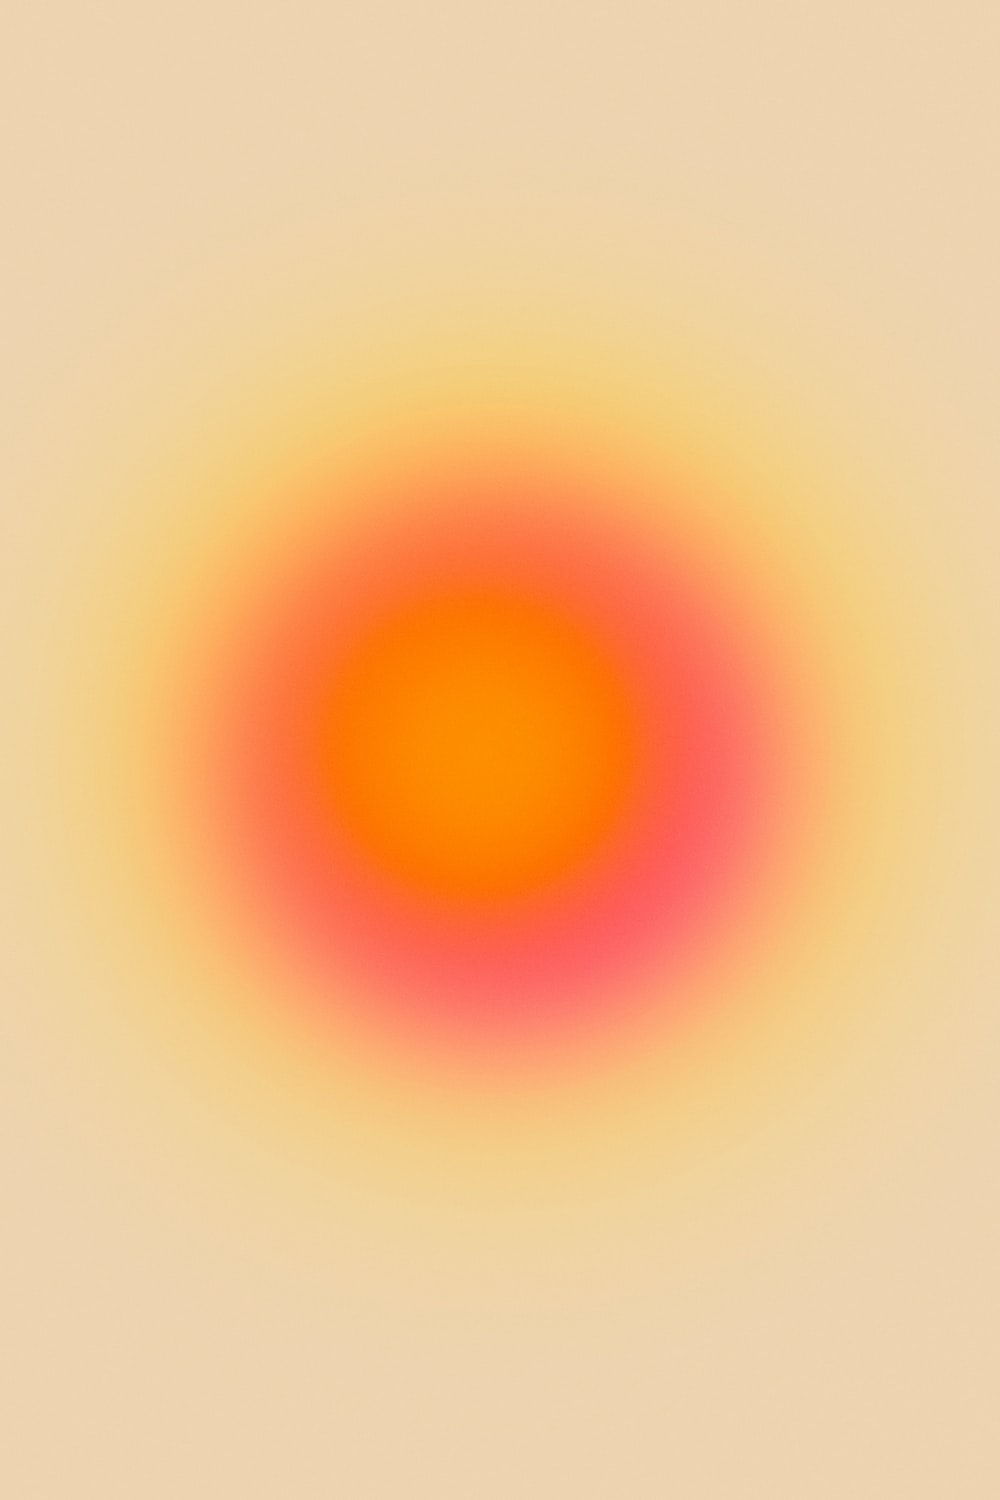 yellow and orange sun illustration